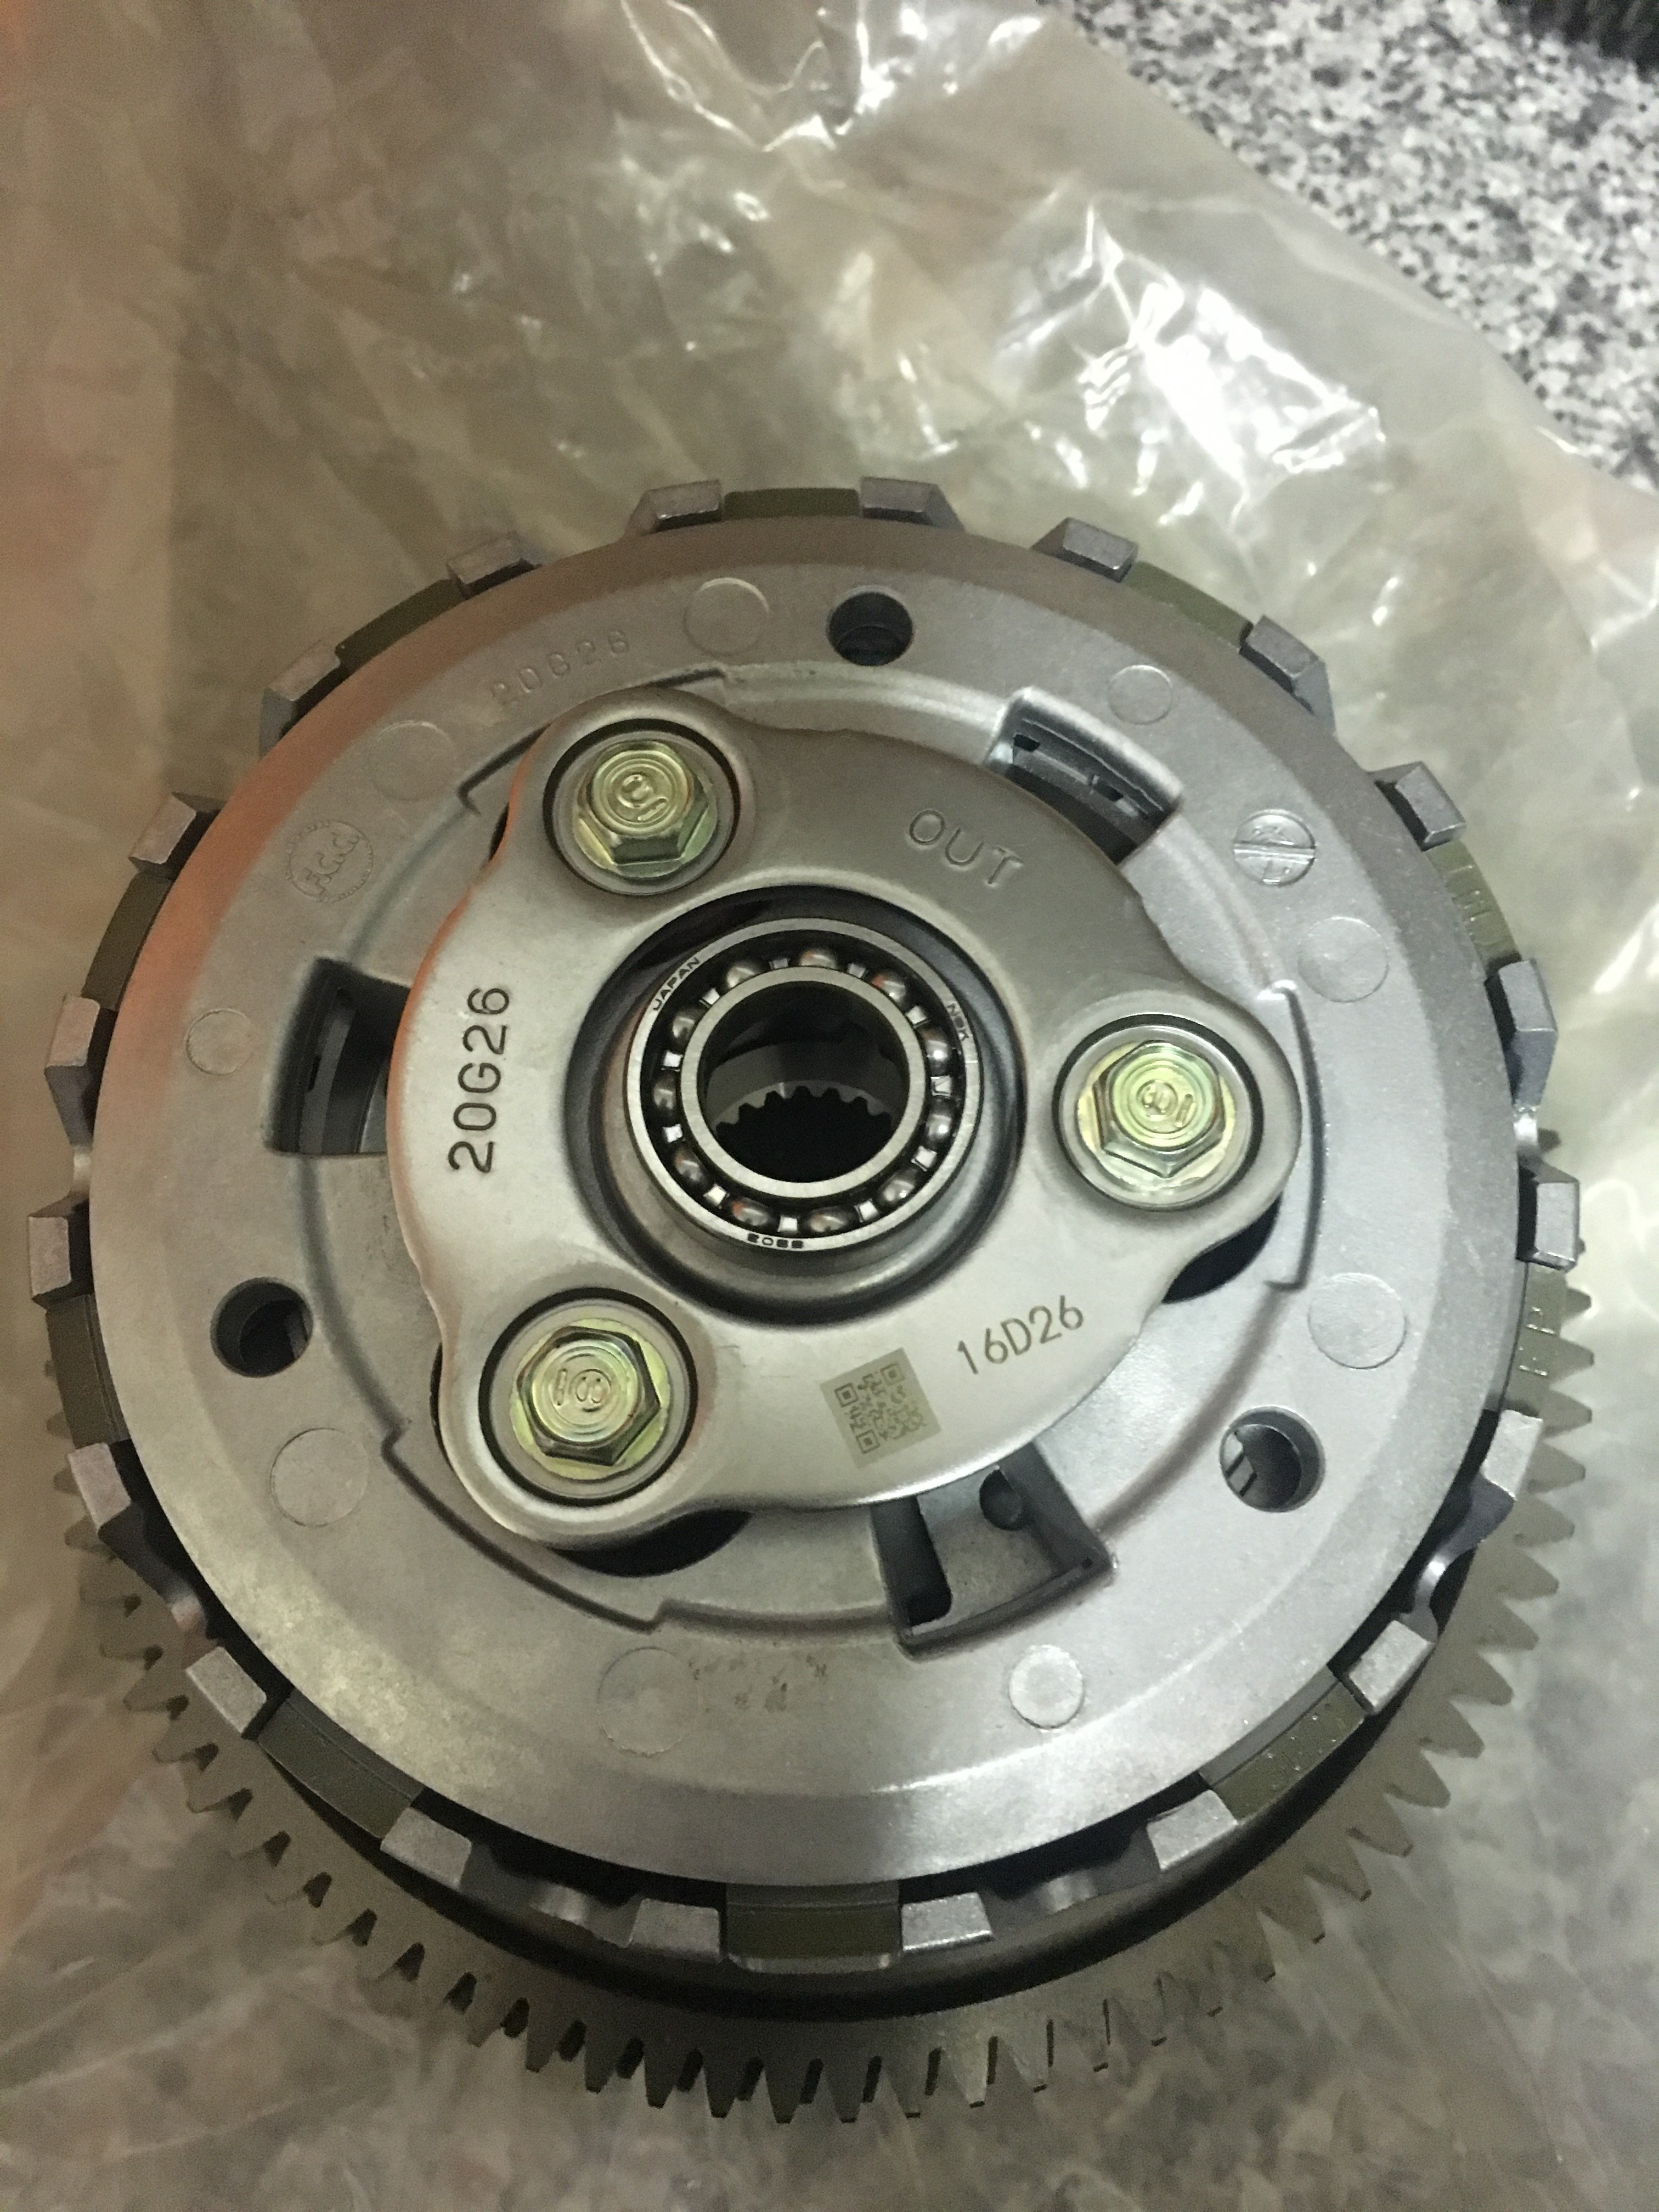 2013 Slipper Clutch New Direct Upgrade On 06 12 Engine 675cc